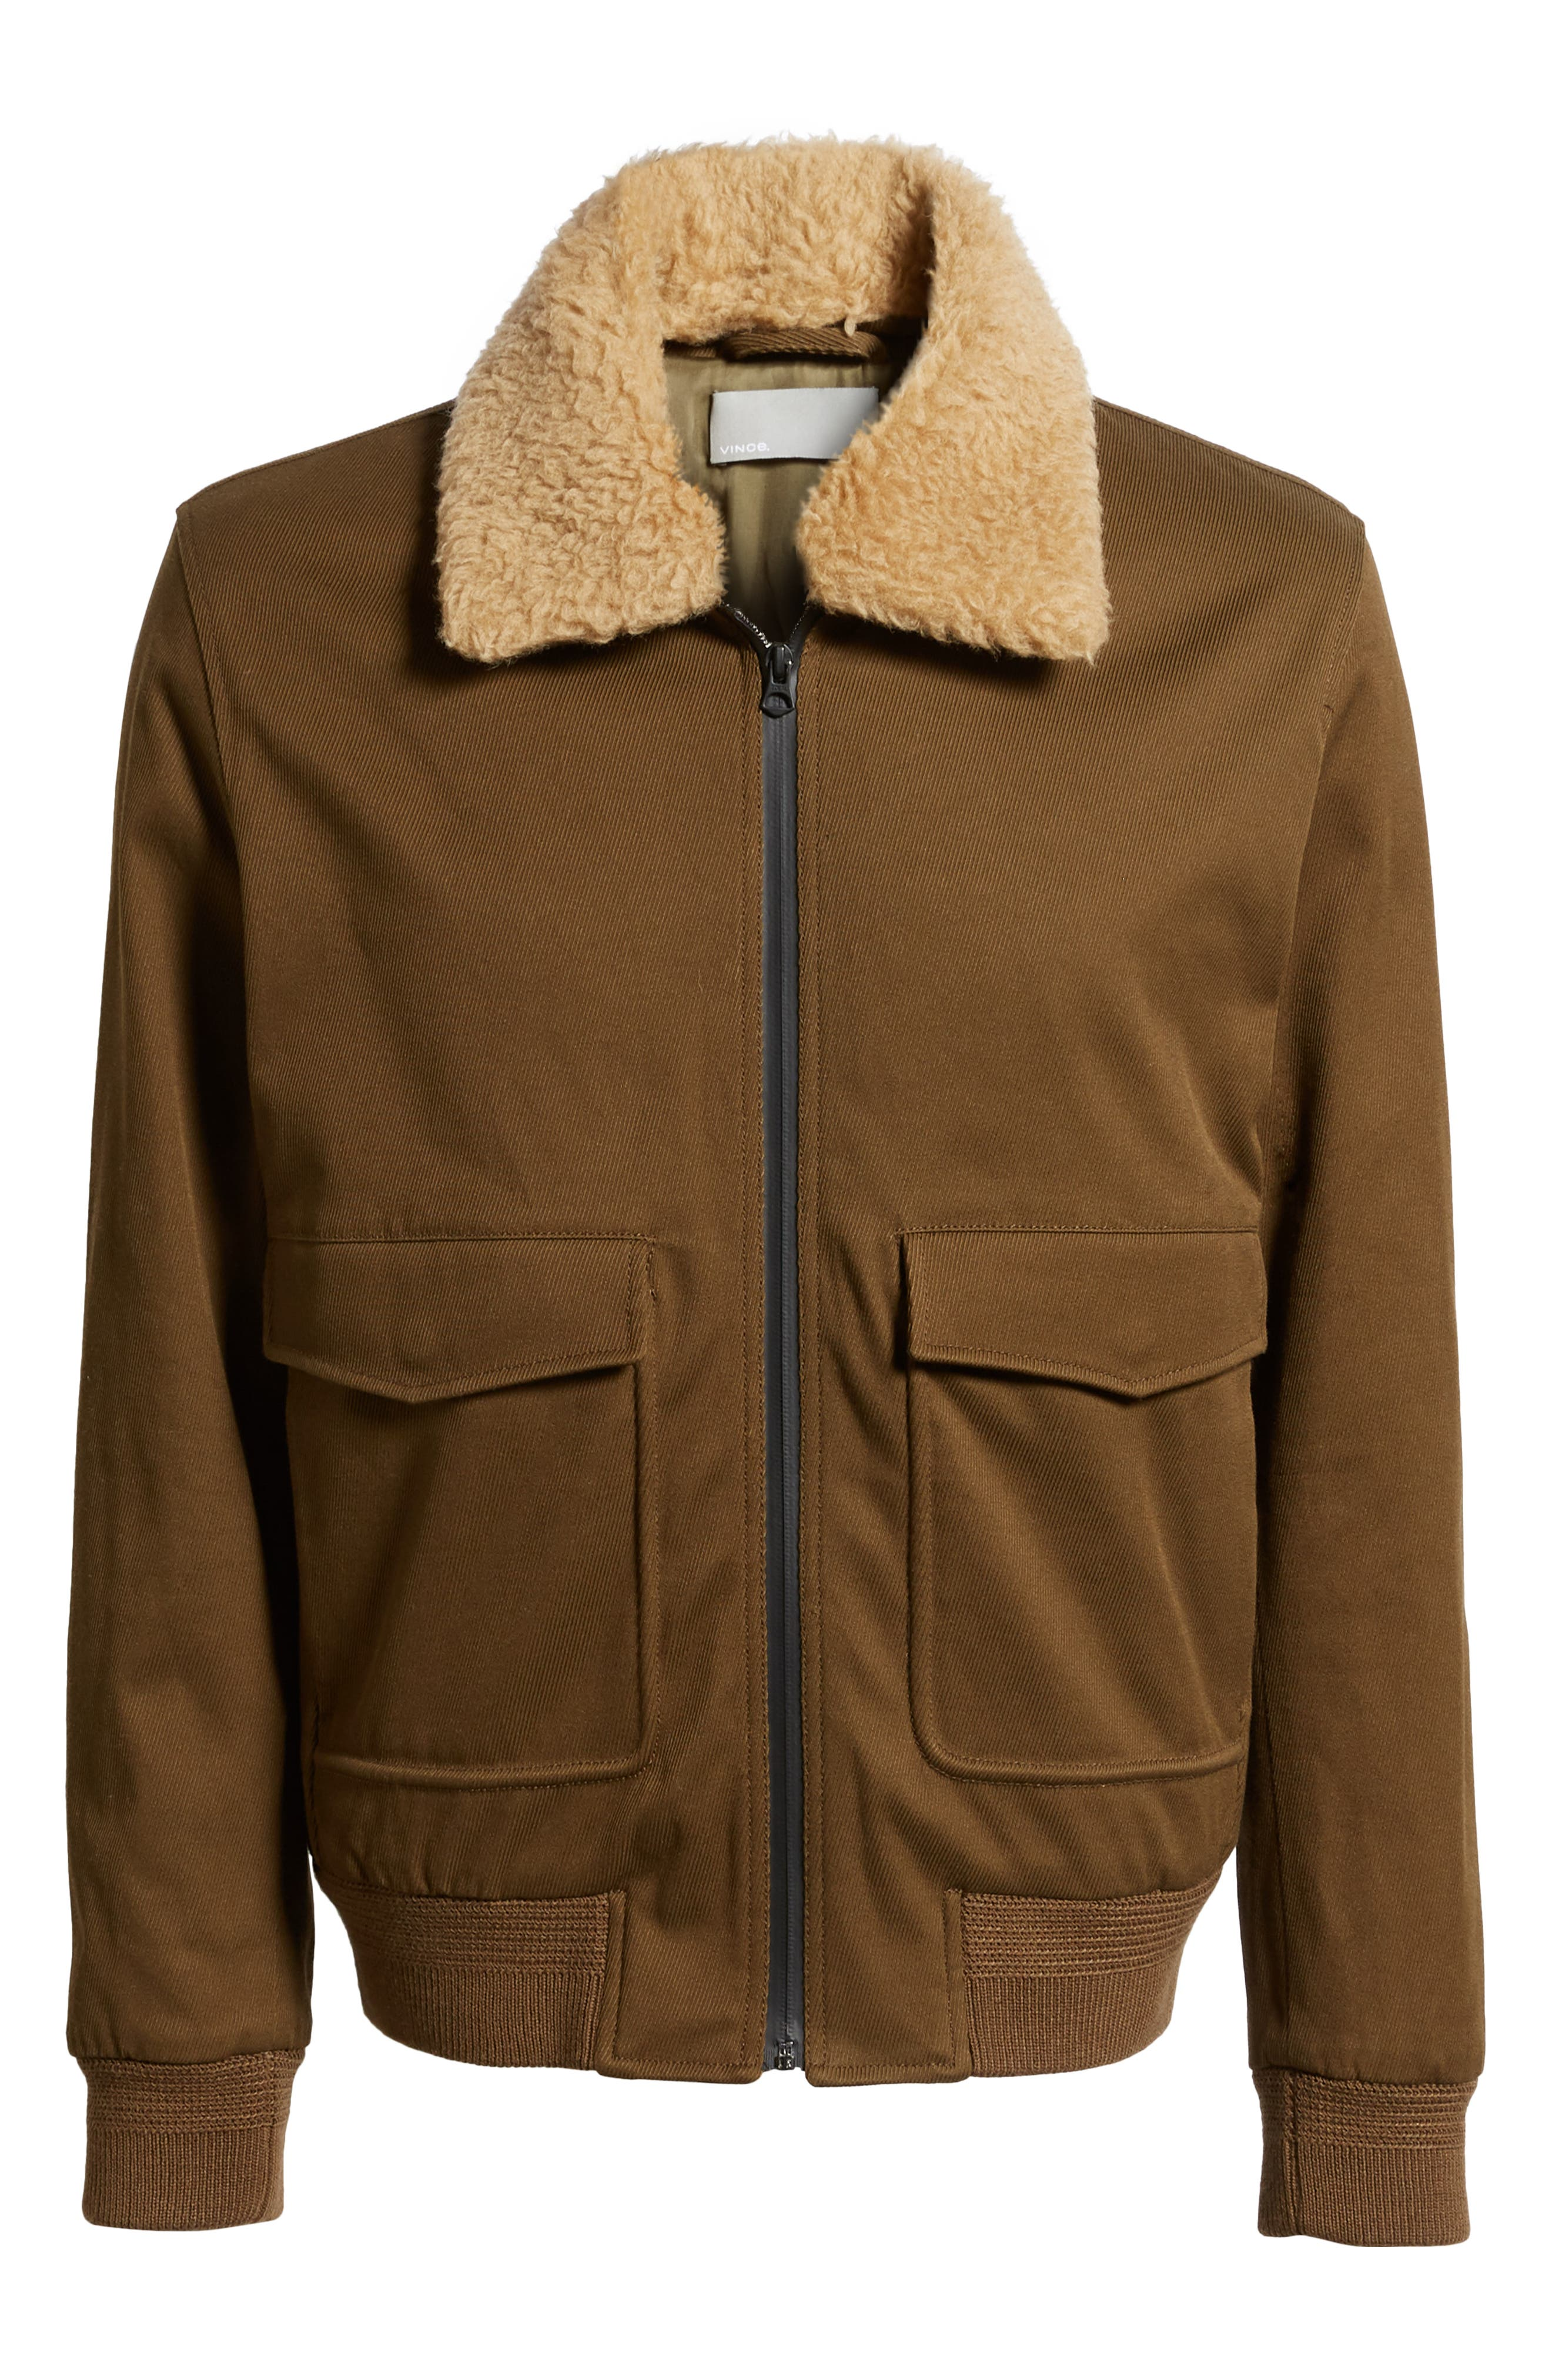 Regular Fit Bomber Jacket with Faux Shearling Collar,                             Alternate thumbnail 5, color,                             INFANTRY GREEN